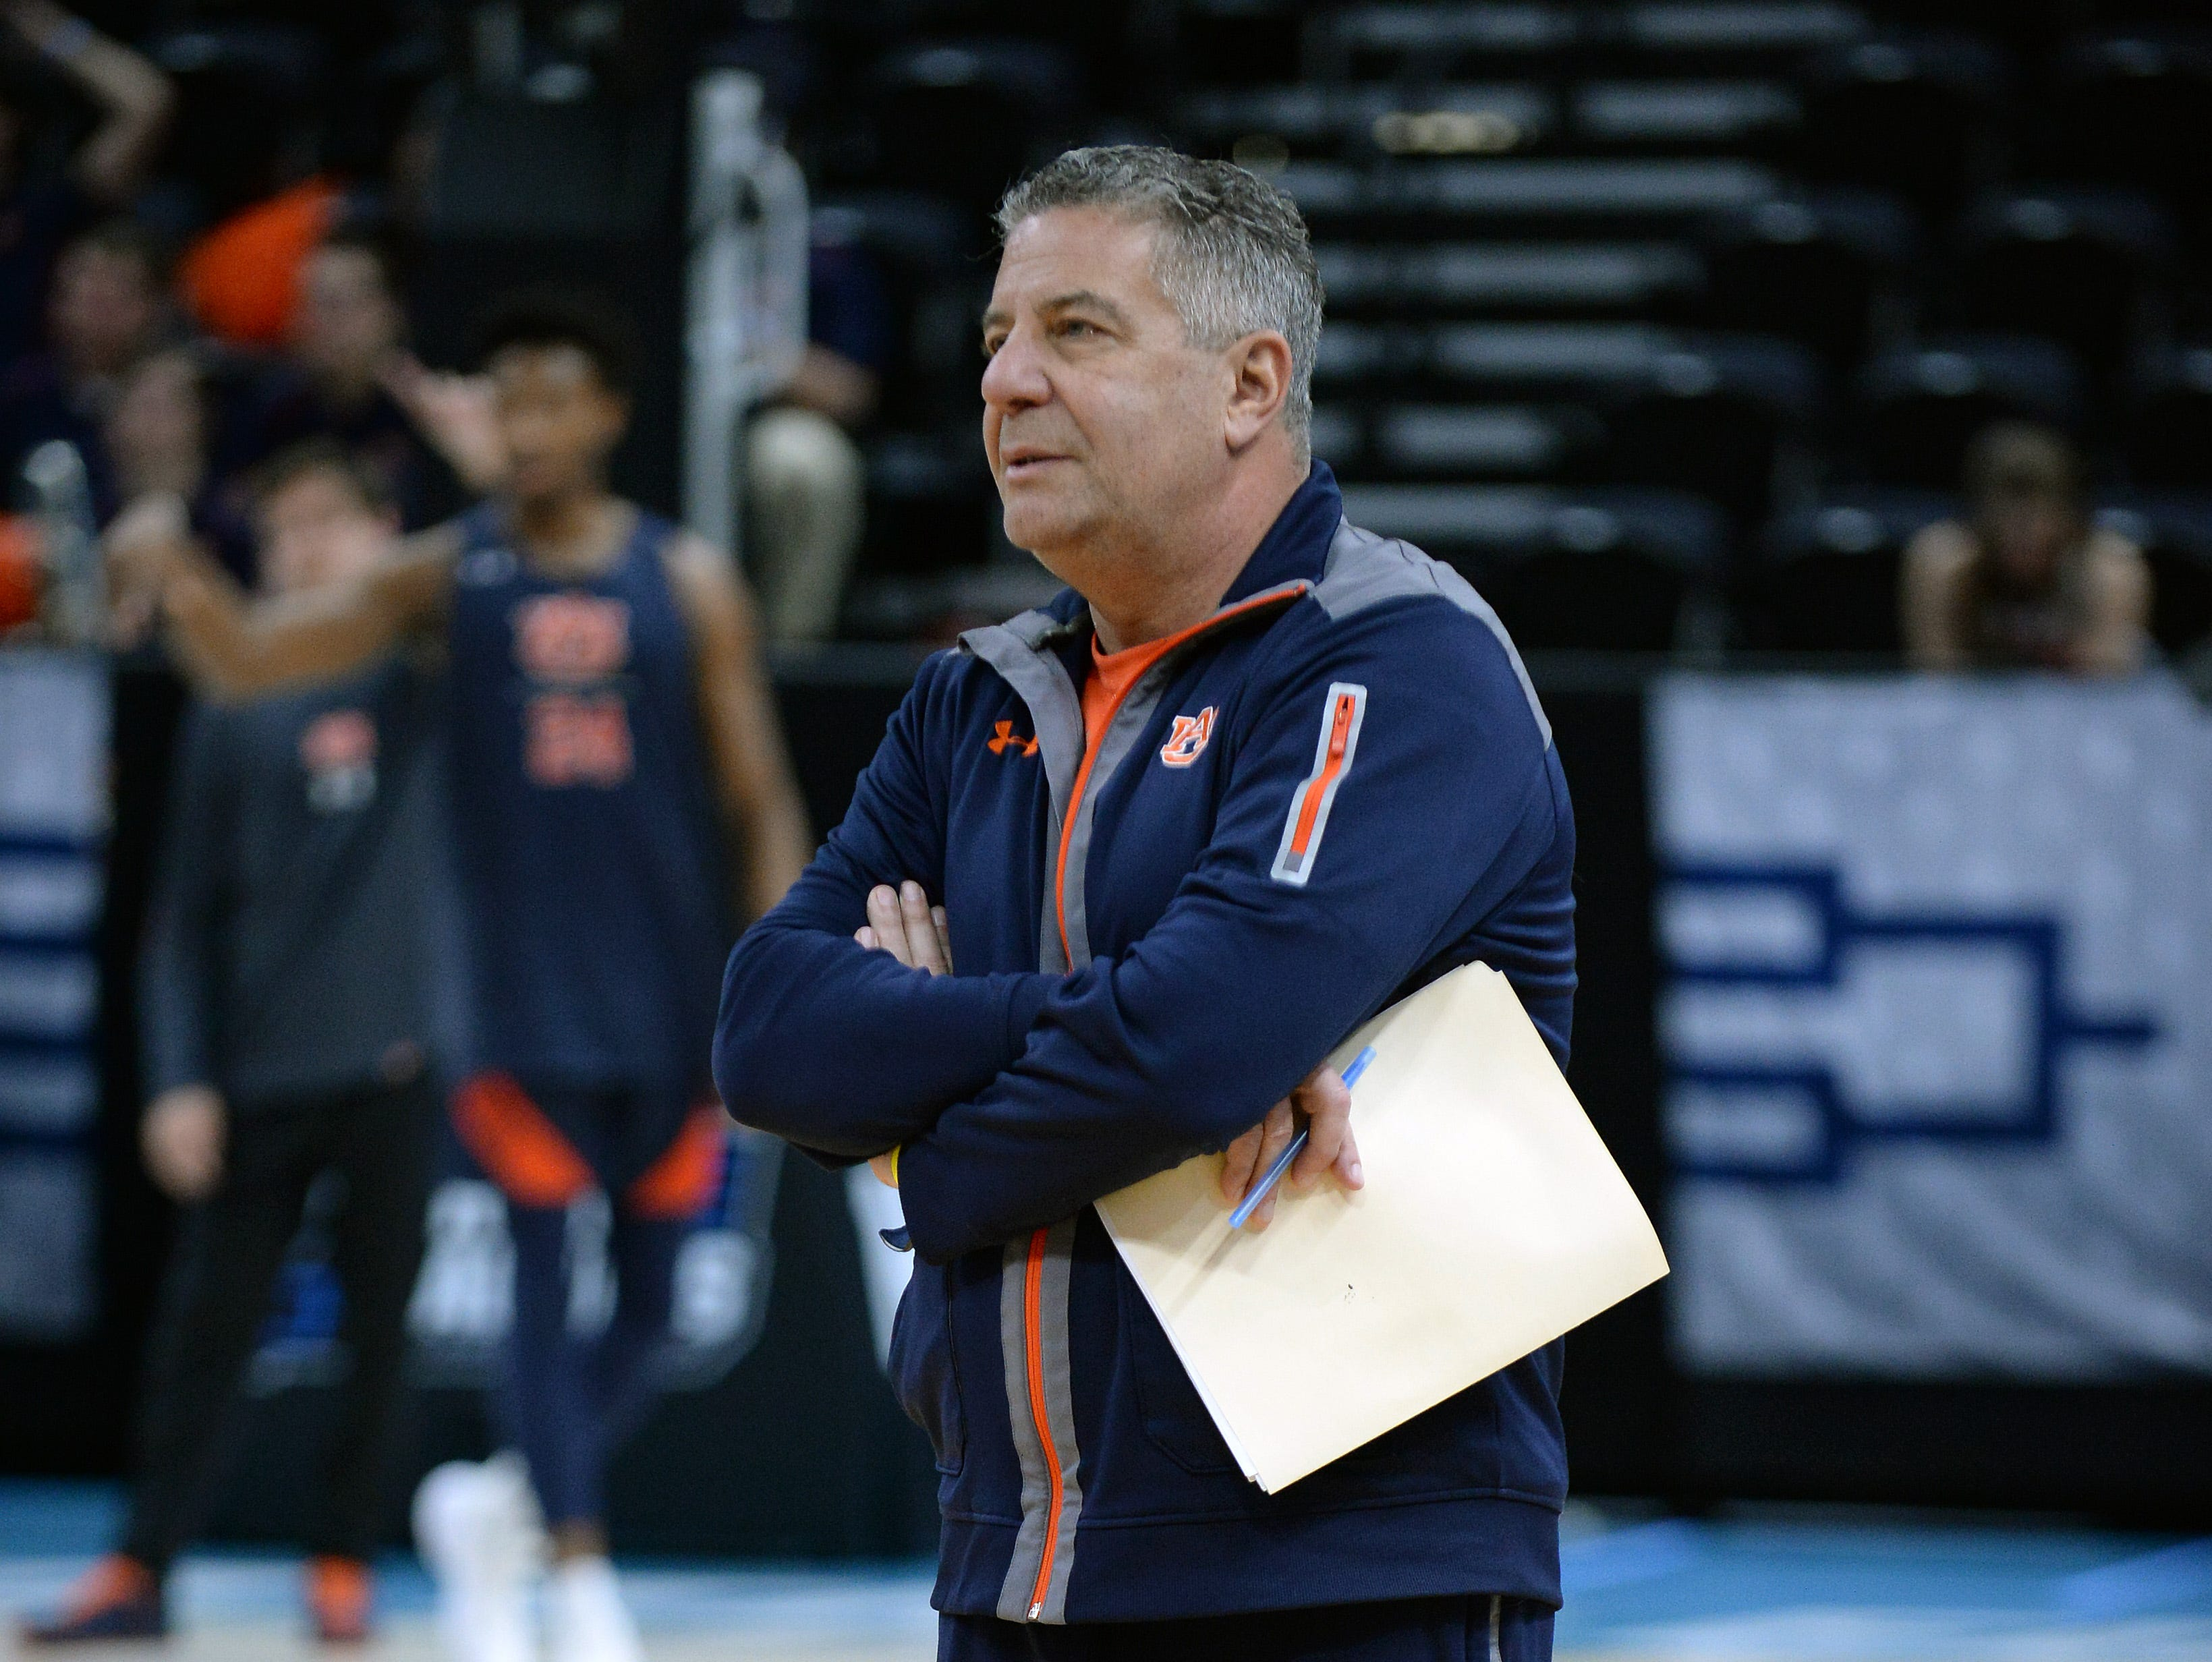 March 20, 2019; Salt Lake City, UT, USA; Auburn Tigers head coach Bruce Pearl during practice before the first round of the 2019 NCAA Tournament at Vivint Smart Home Arena. Mandatory Credit: Gary A. Vasquez-USA TODAY Sports